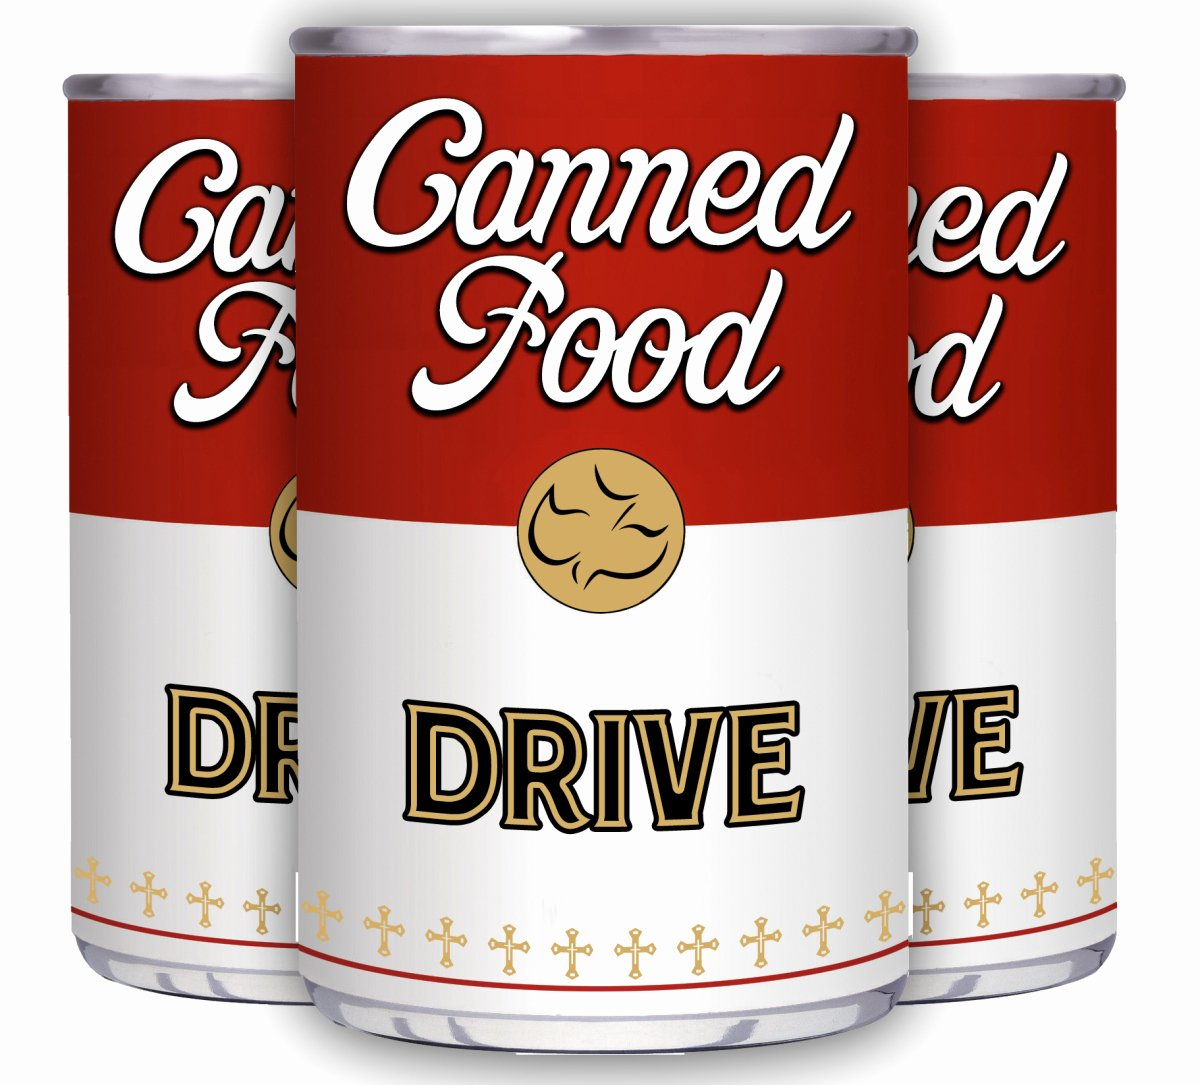 Canned Food Drive Flyer Template Beautiful Lo Ellen Park Canned Food Drive Lo Ellen Park Secondary School